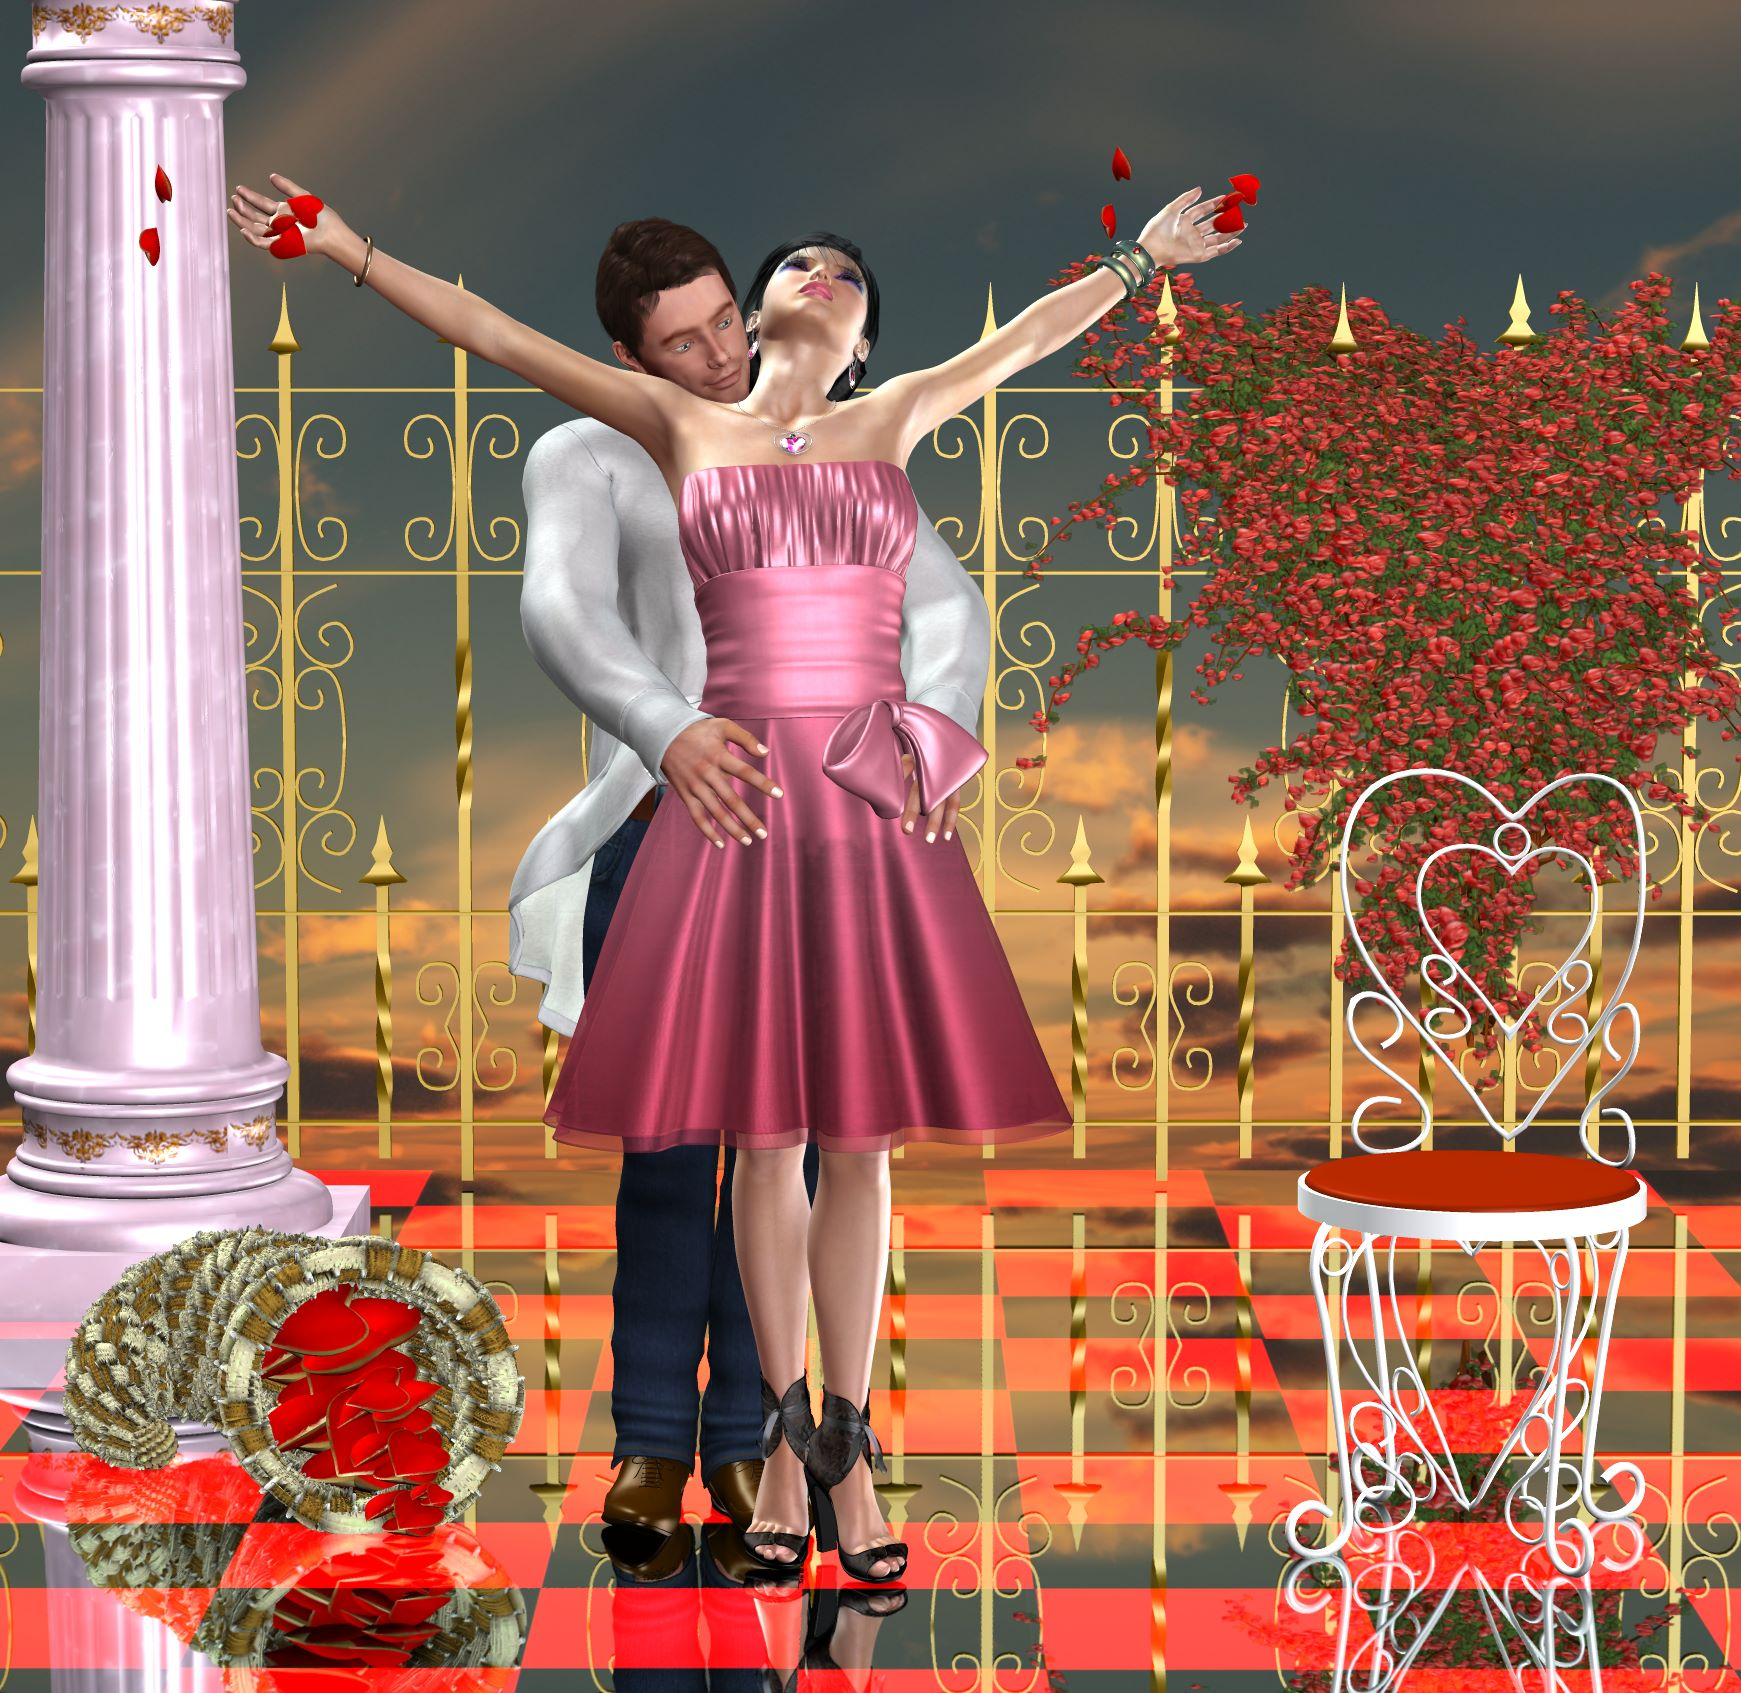 Happy Valentines Day to all